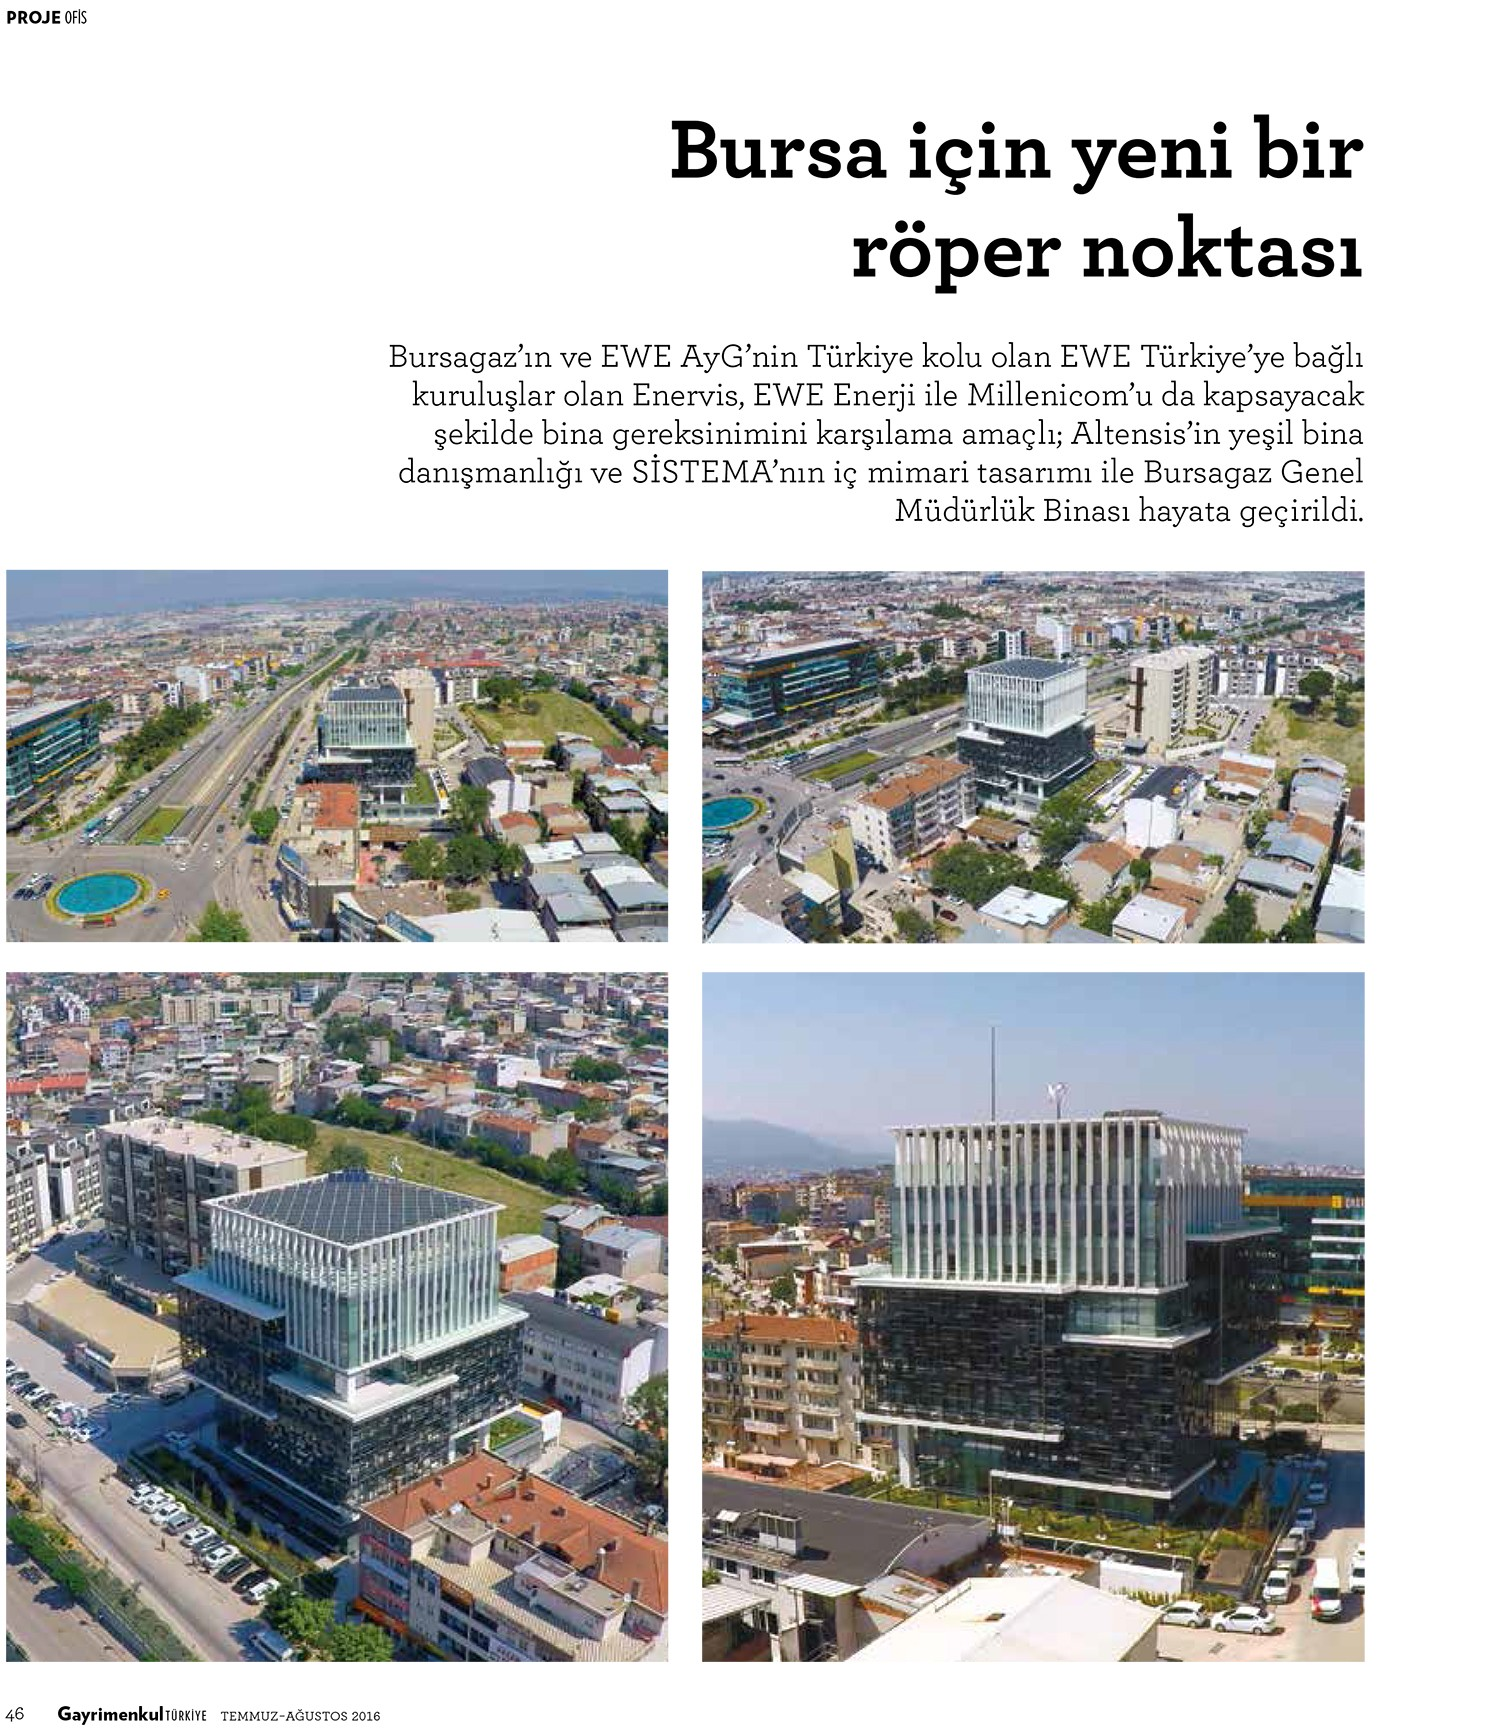 A new landmark for Bursa